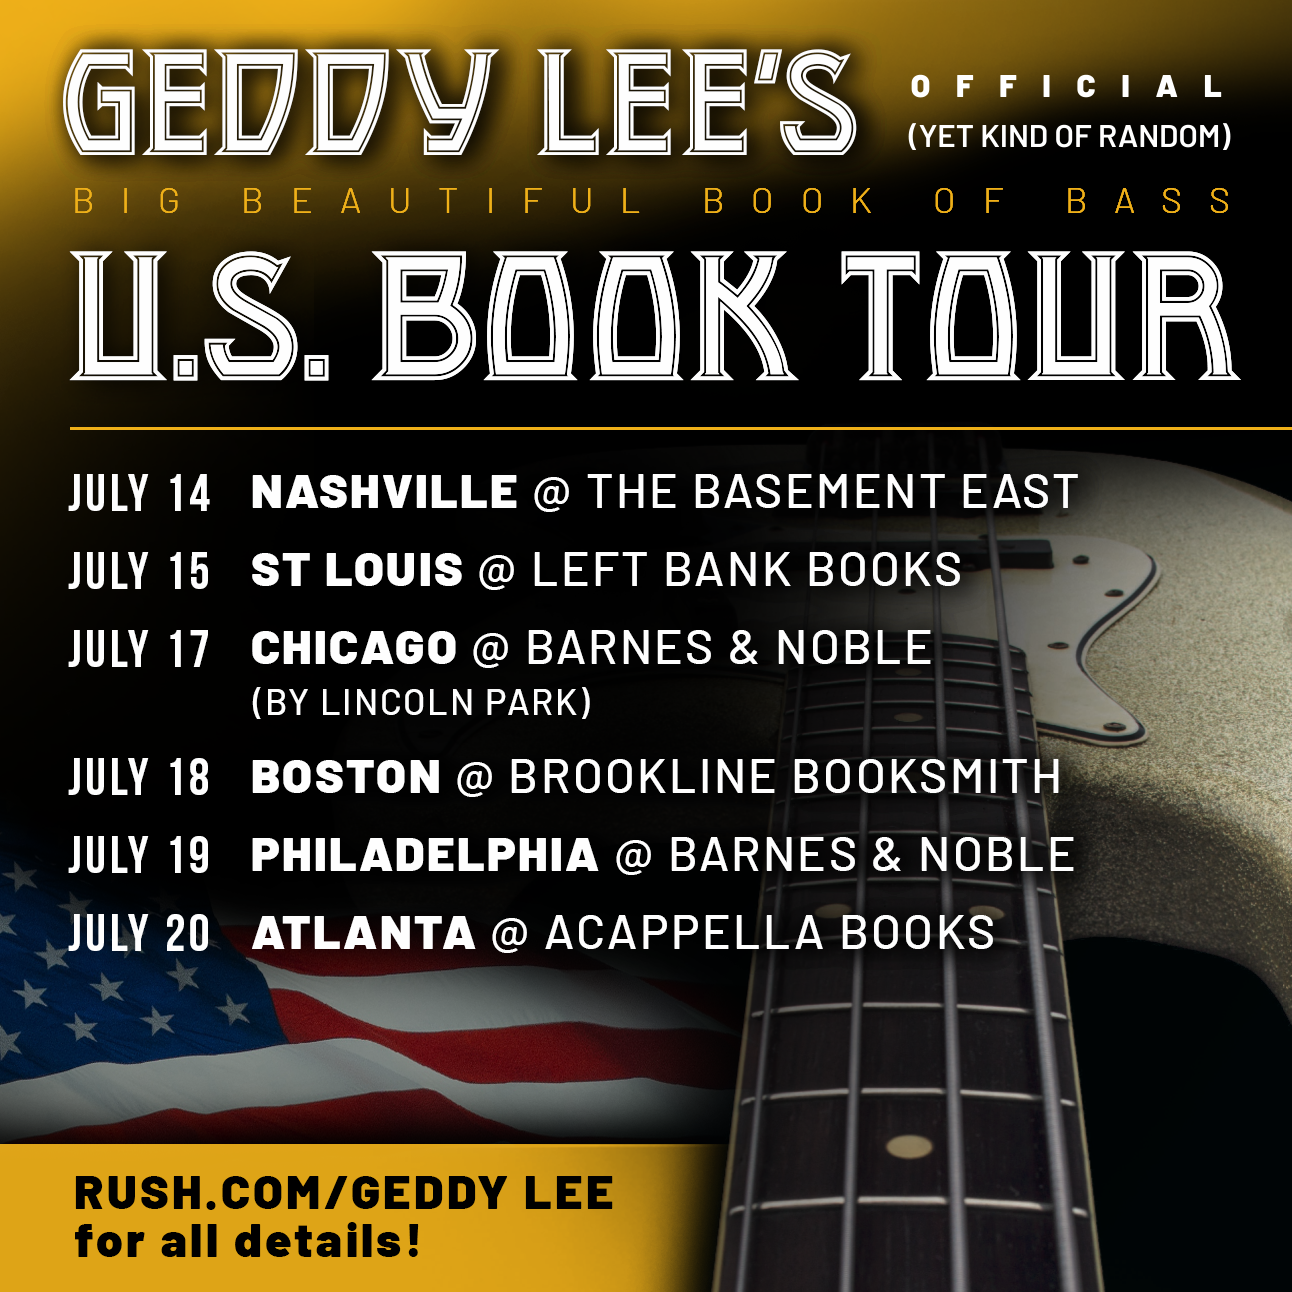 Geddy Lee BBBoB US Signing Tour   Rush.com